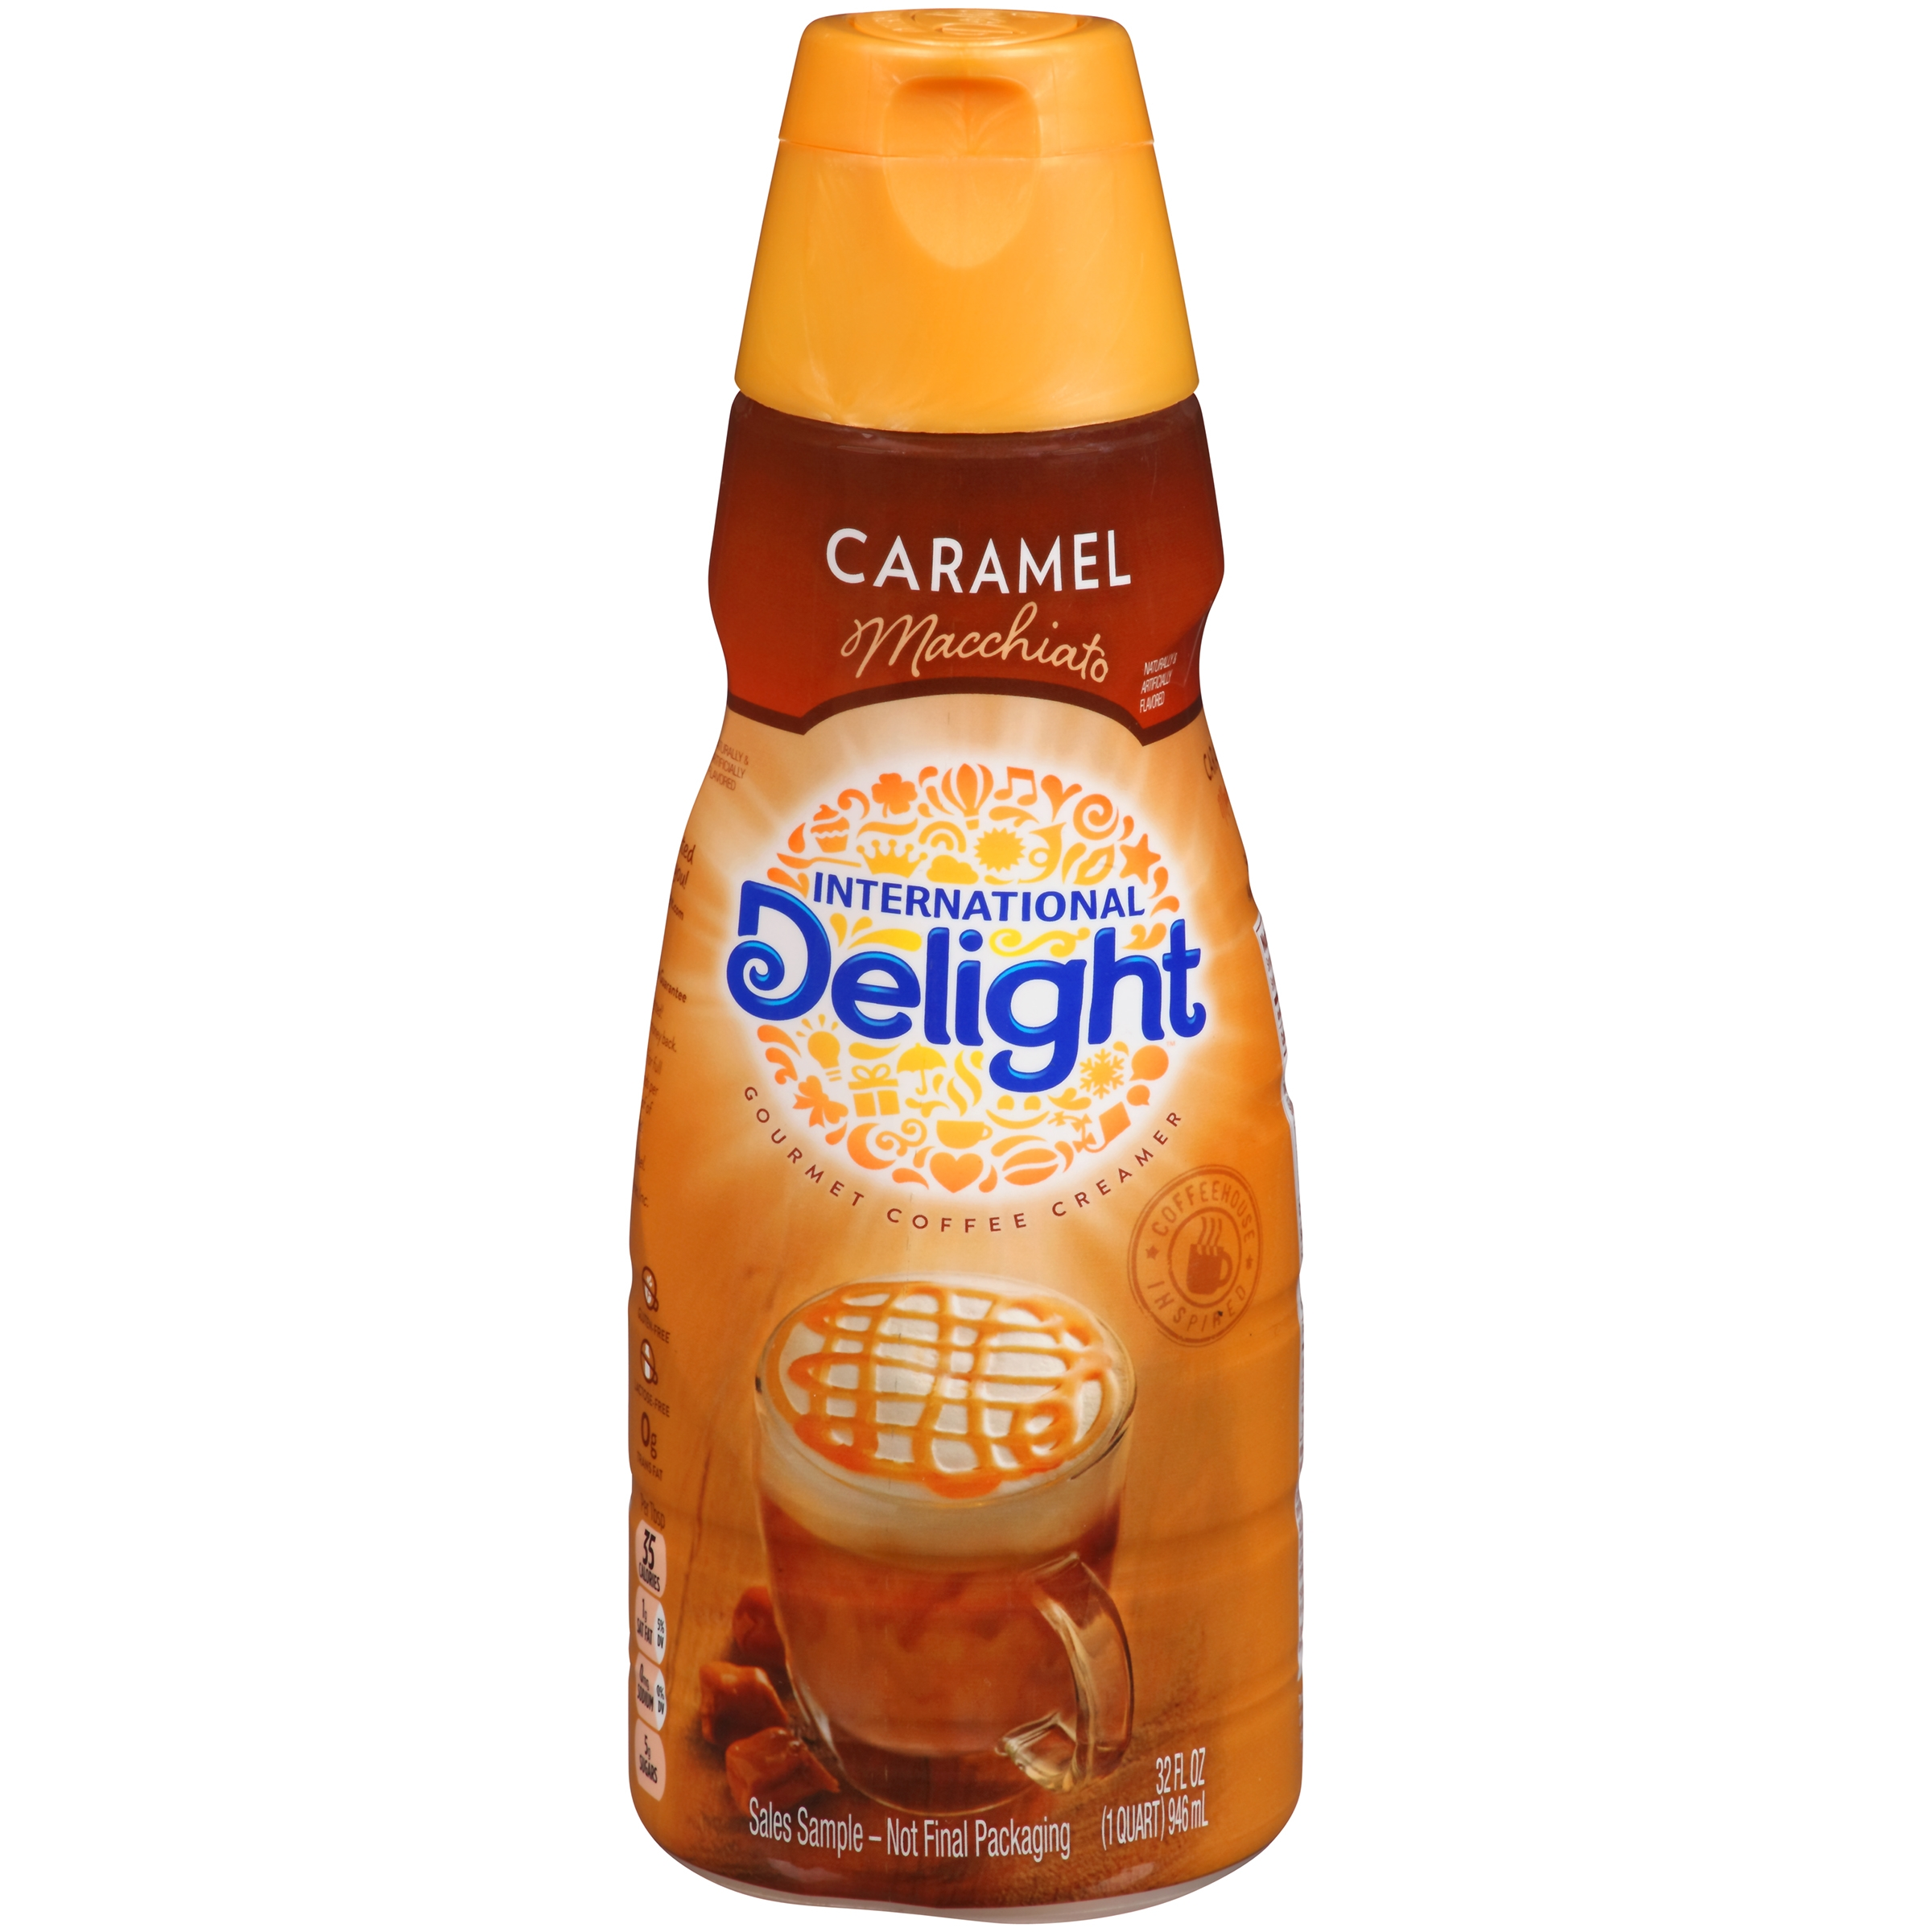 1. You can find some great deals on International Delight coffee creamer. Receive the product for no cost with a $2 discount coupon! Check back around the holiday season for fantastic deals on themed creamers. 2. Target sells the oz cans of International Delight One Touch Latte for $